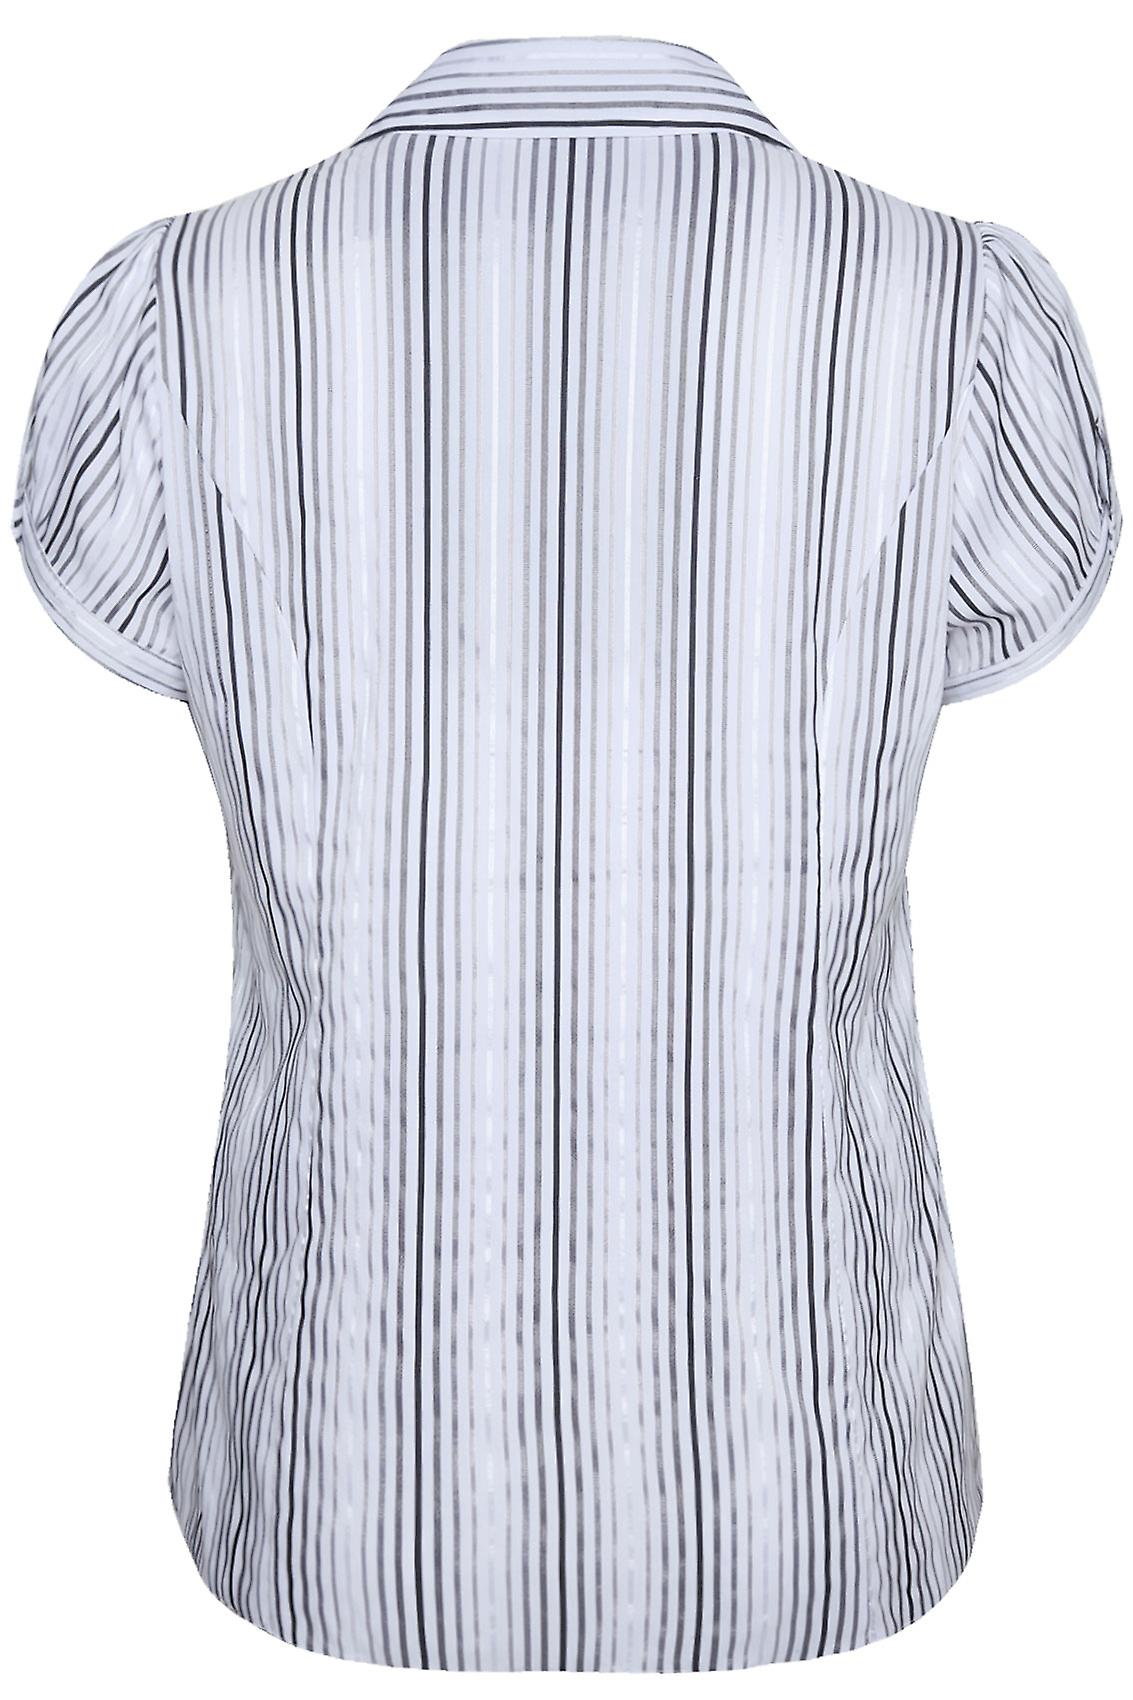 White And Black Striped Shirt With Ruching Detail